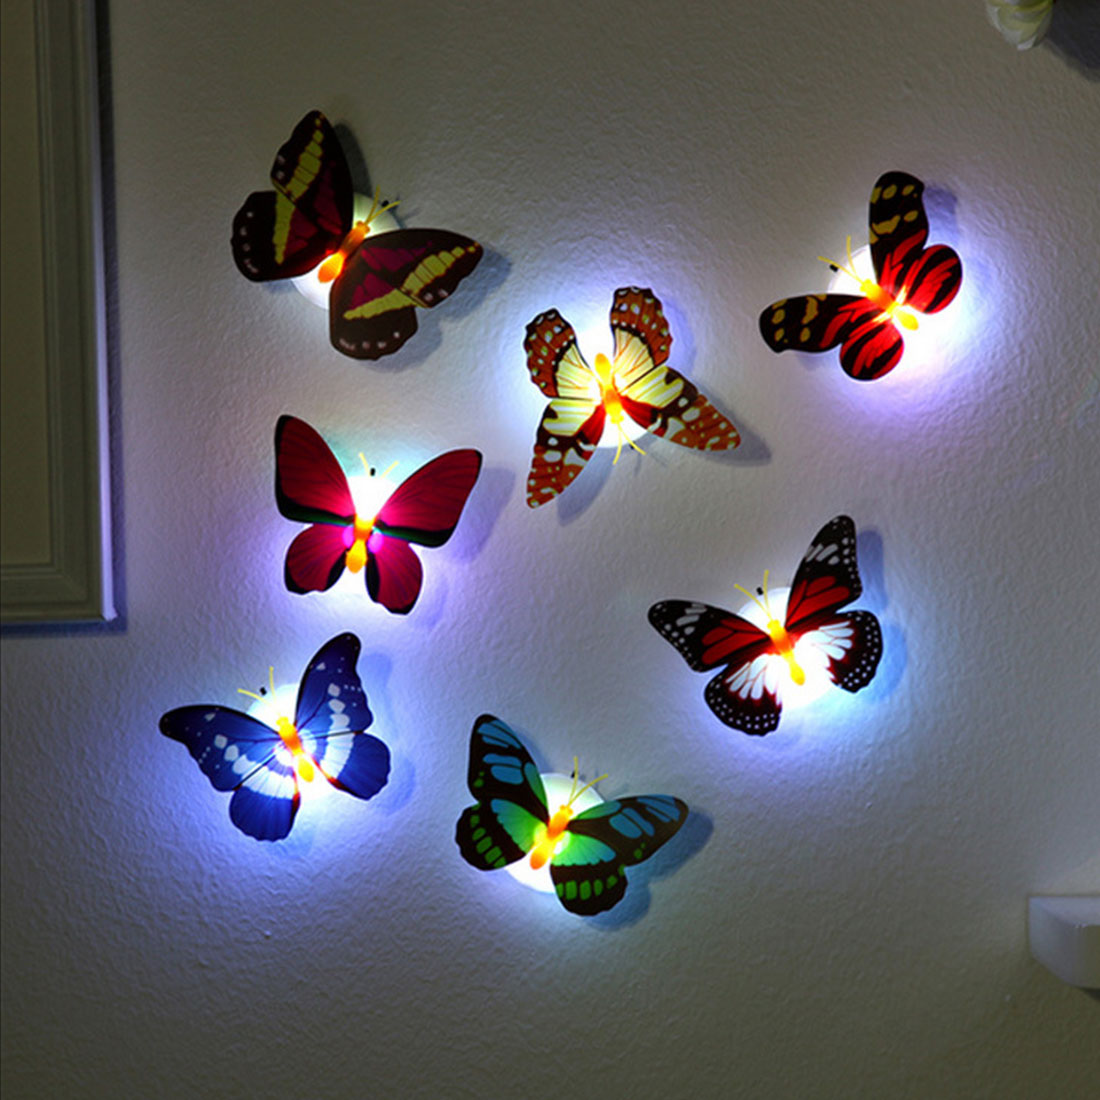 Hot LED Light Night Atmosphere Lamp with Colorful Changing Butterfly Indoor Light with Suction Pad Home Party Desk Wall DecorHot LED Light Night Atmosphere Lamp with Colorful Changing Butterfly Indoor Light with Suction Pad Home Party Desk Wall Decor